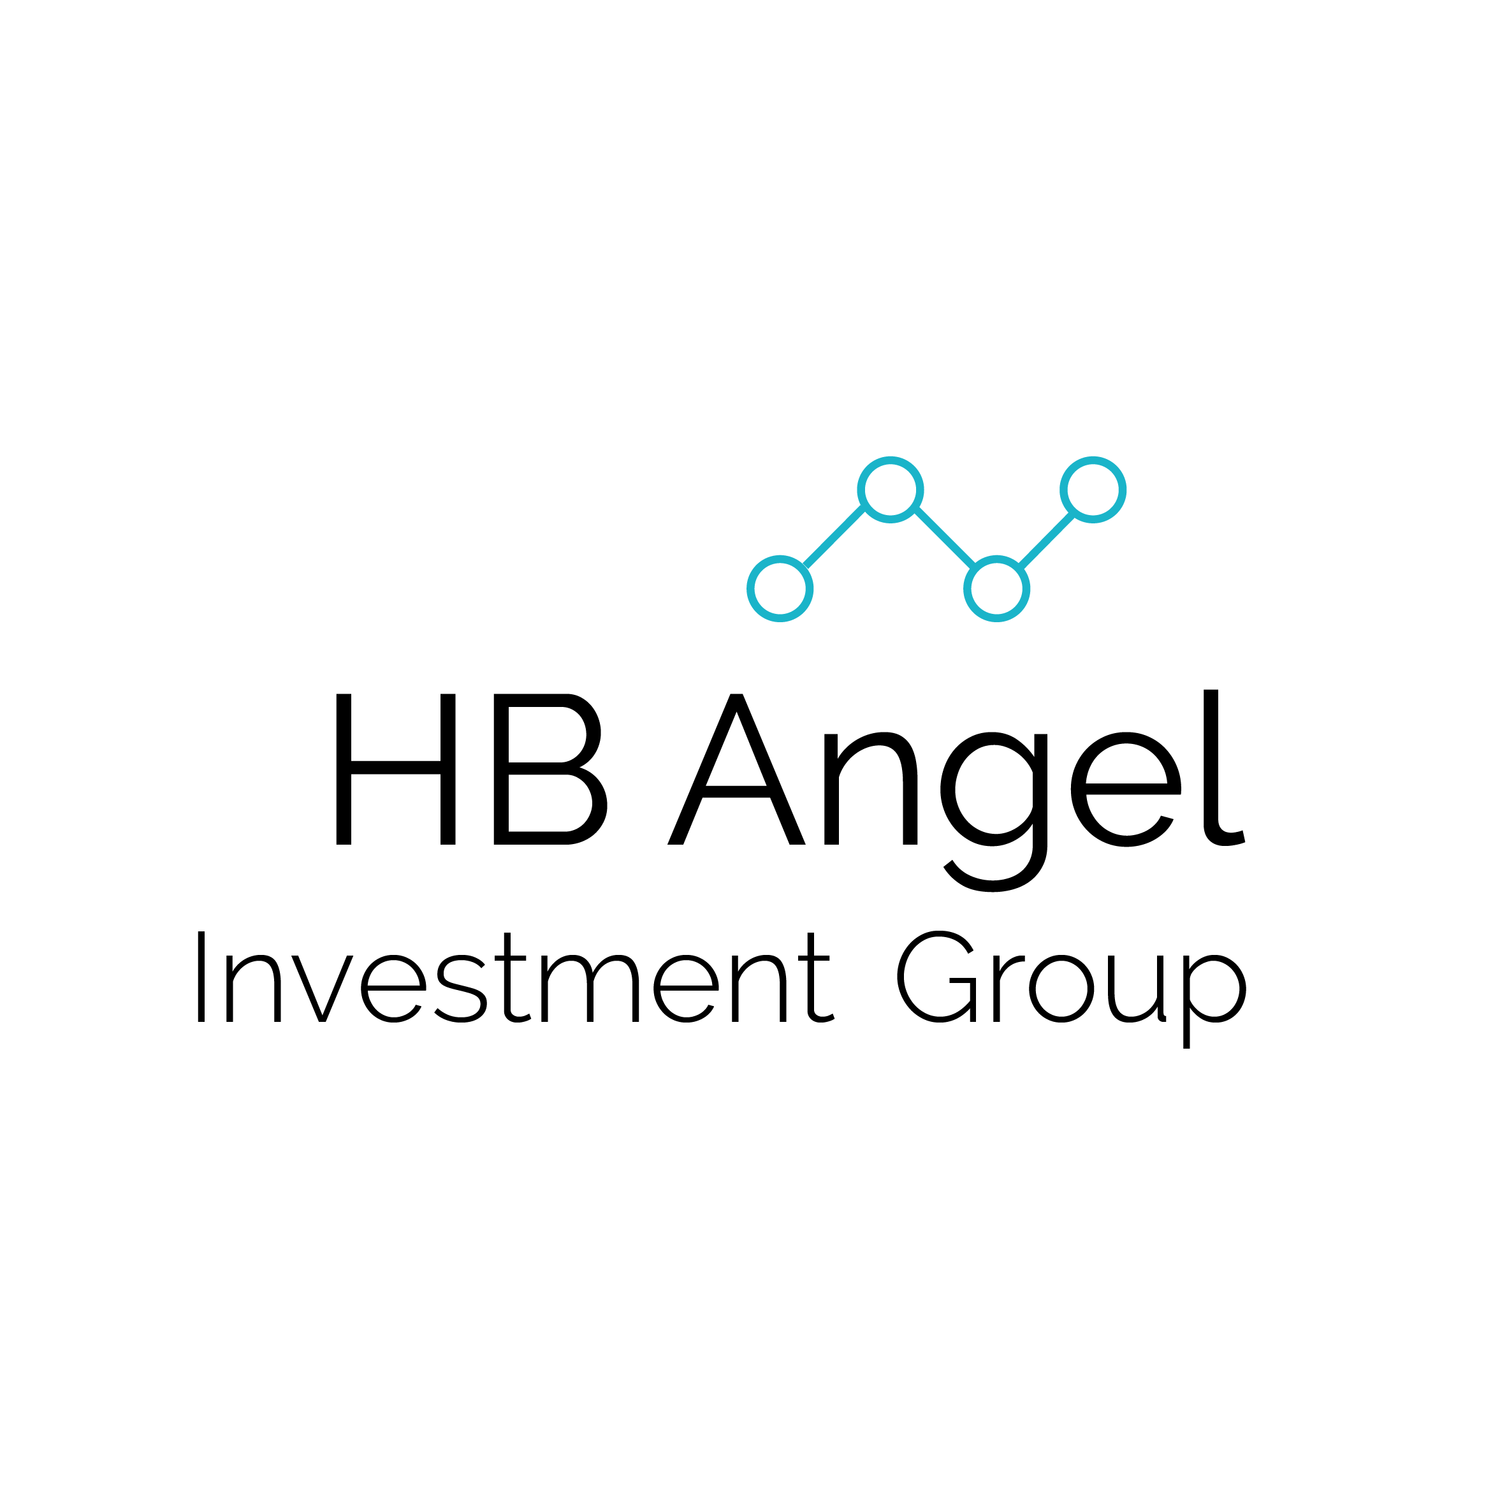 HB Angel Investment Group